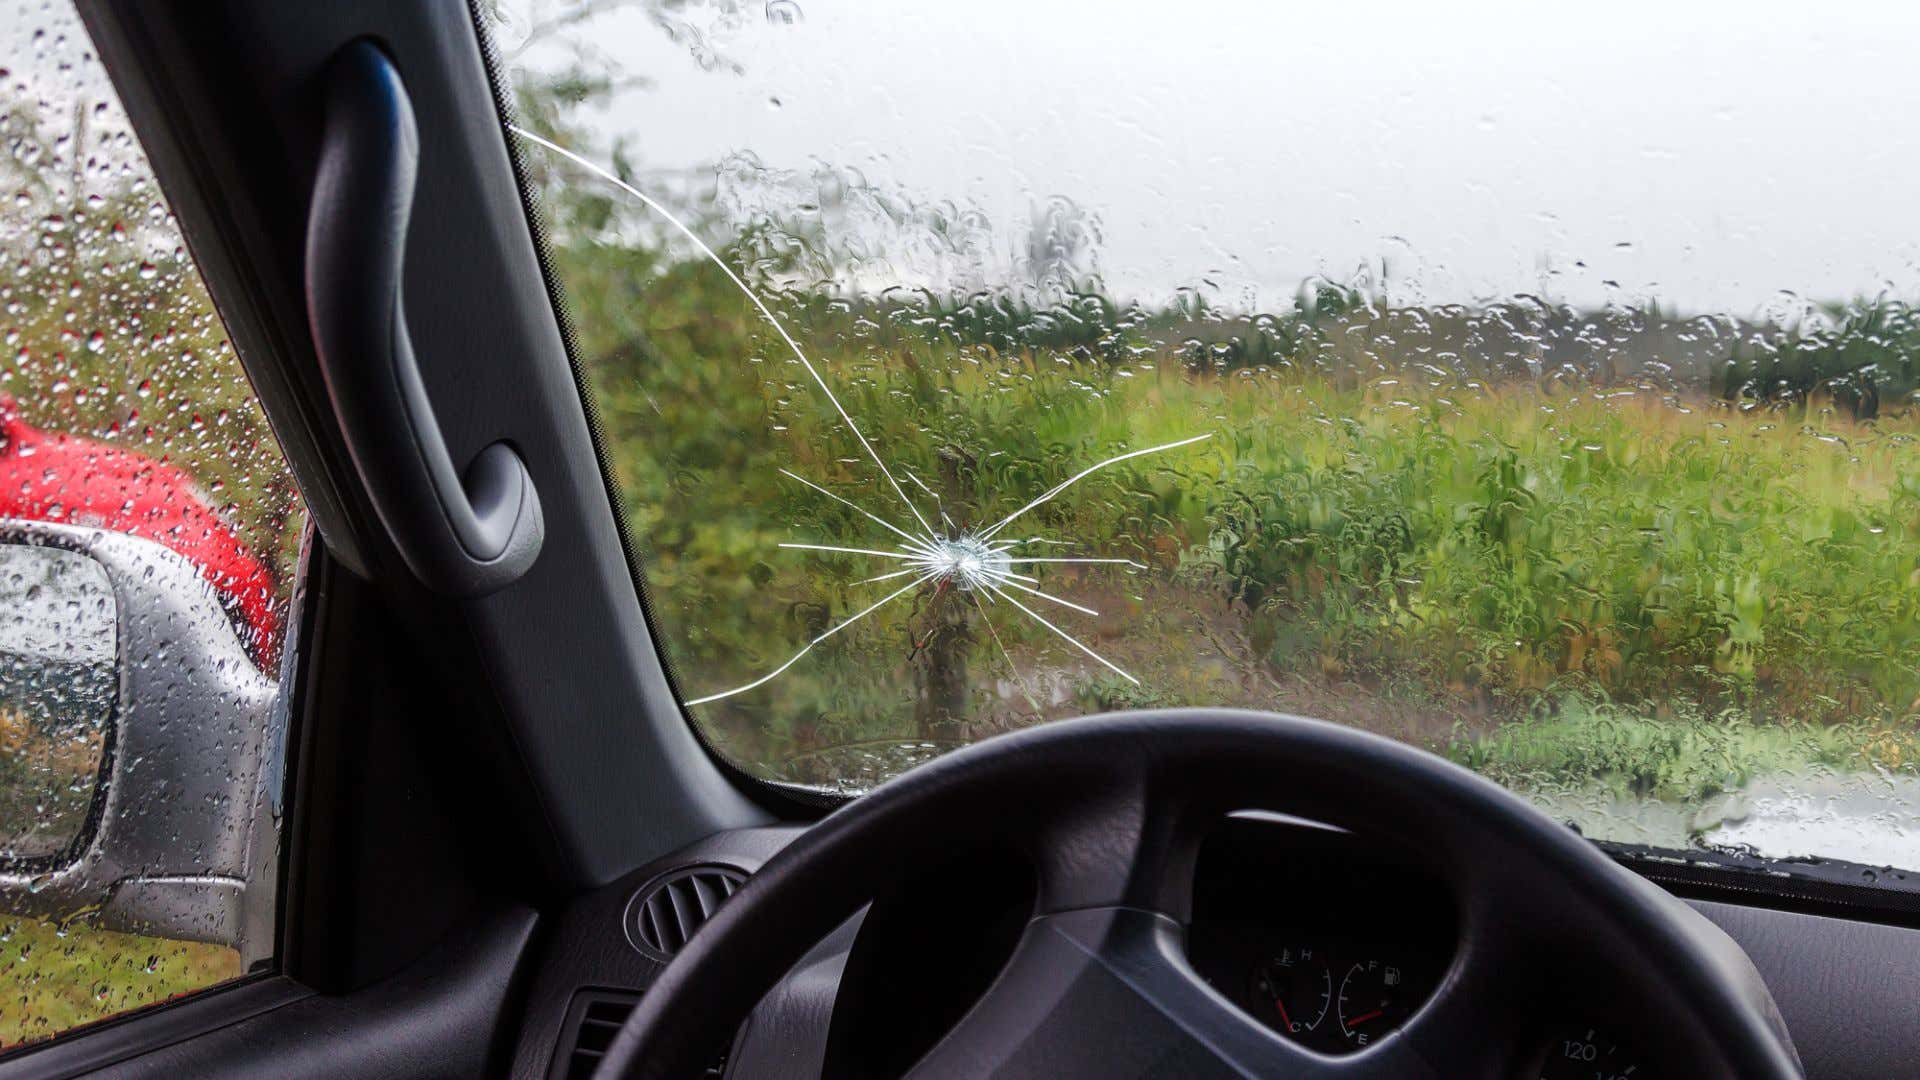 Dang spider windshield cracks.